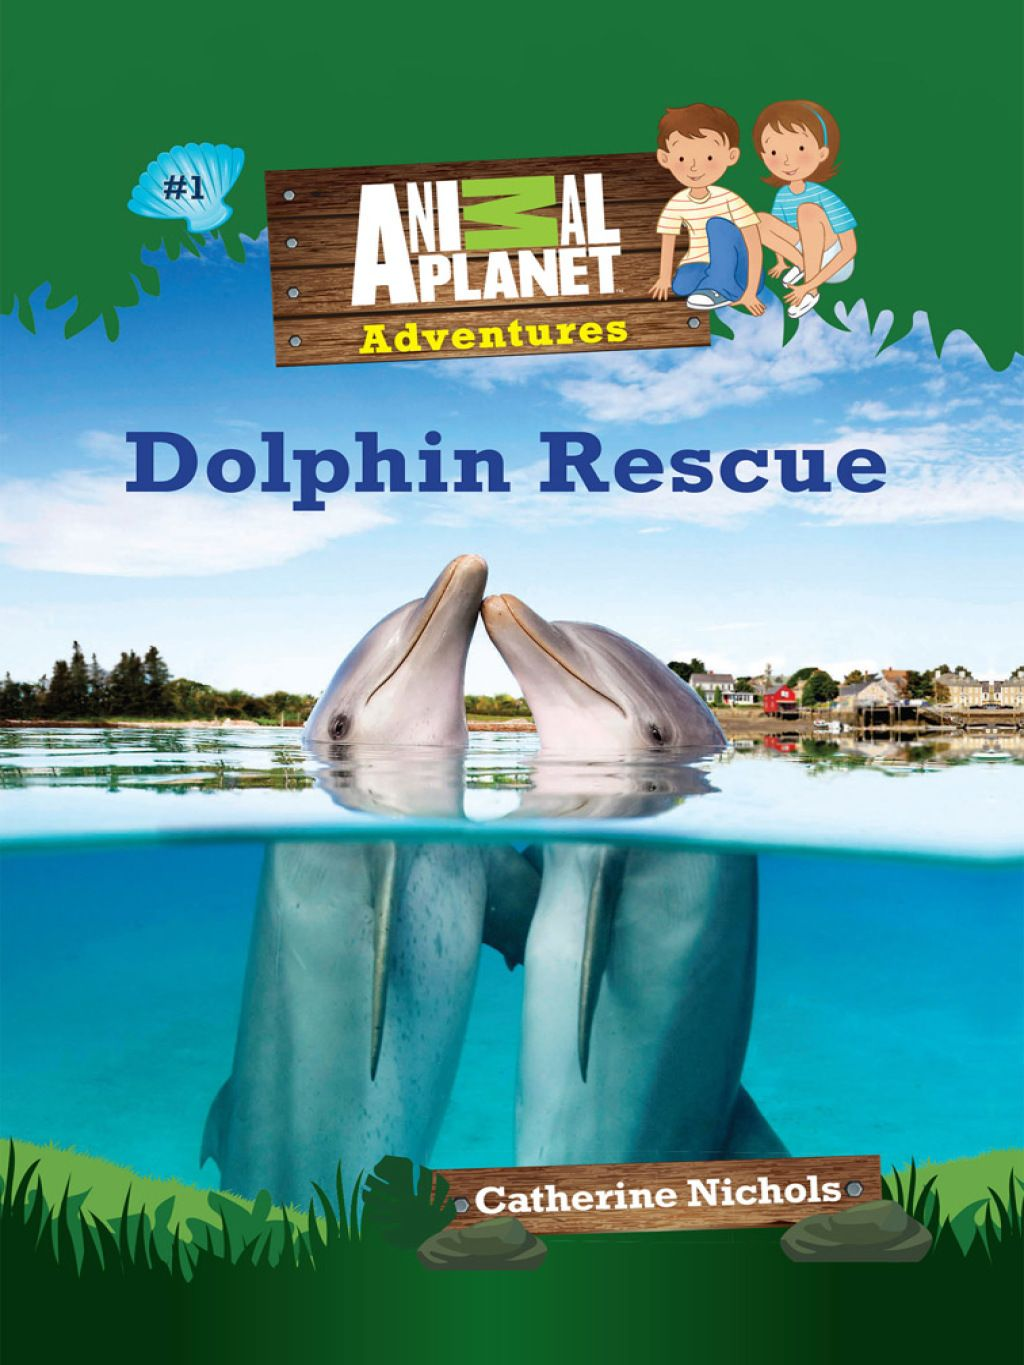 Dolphin rescue animal adventures chapter books 1